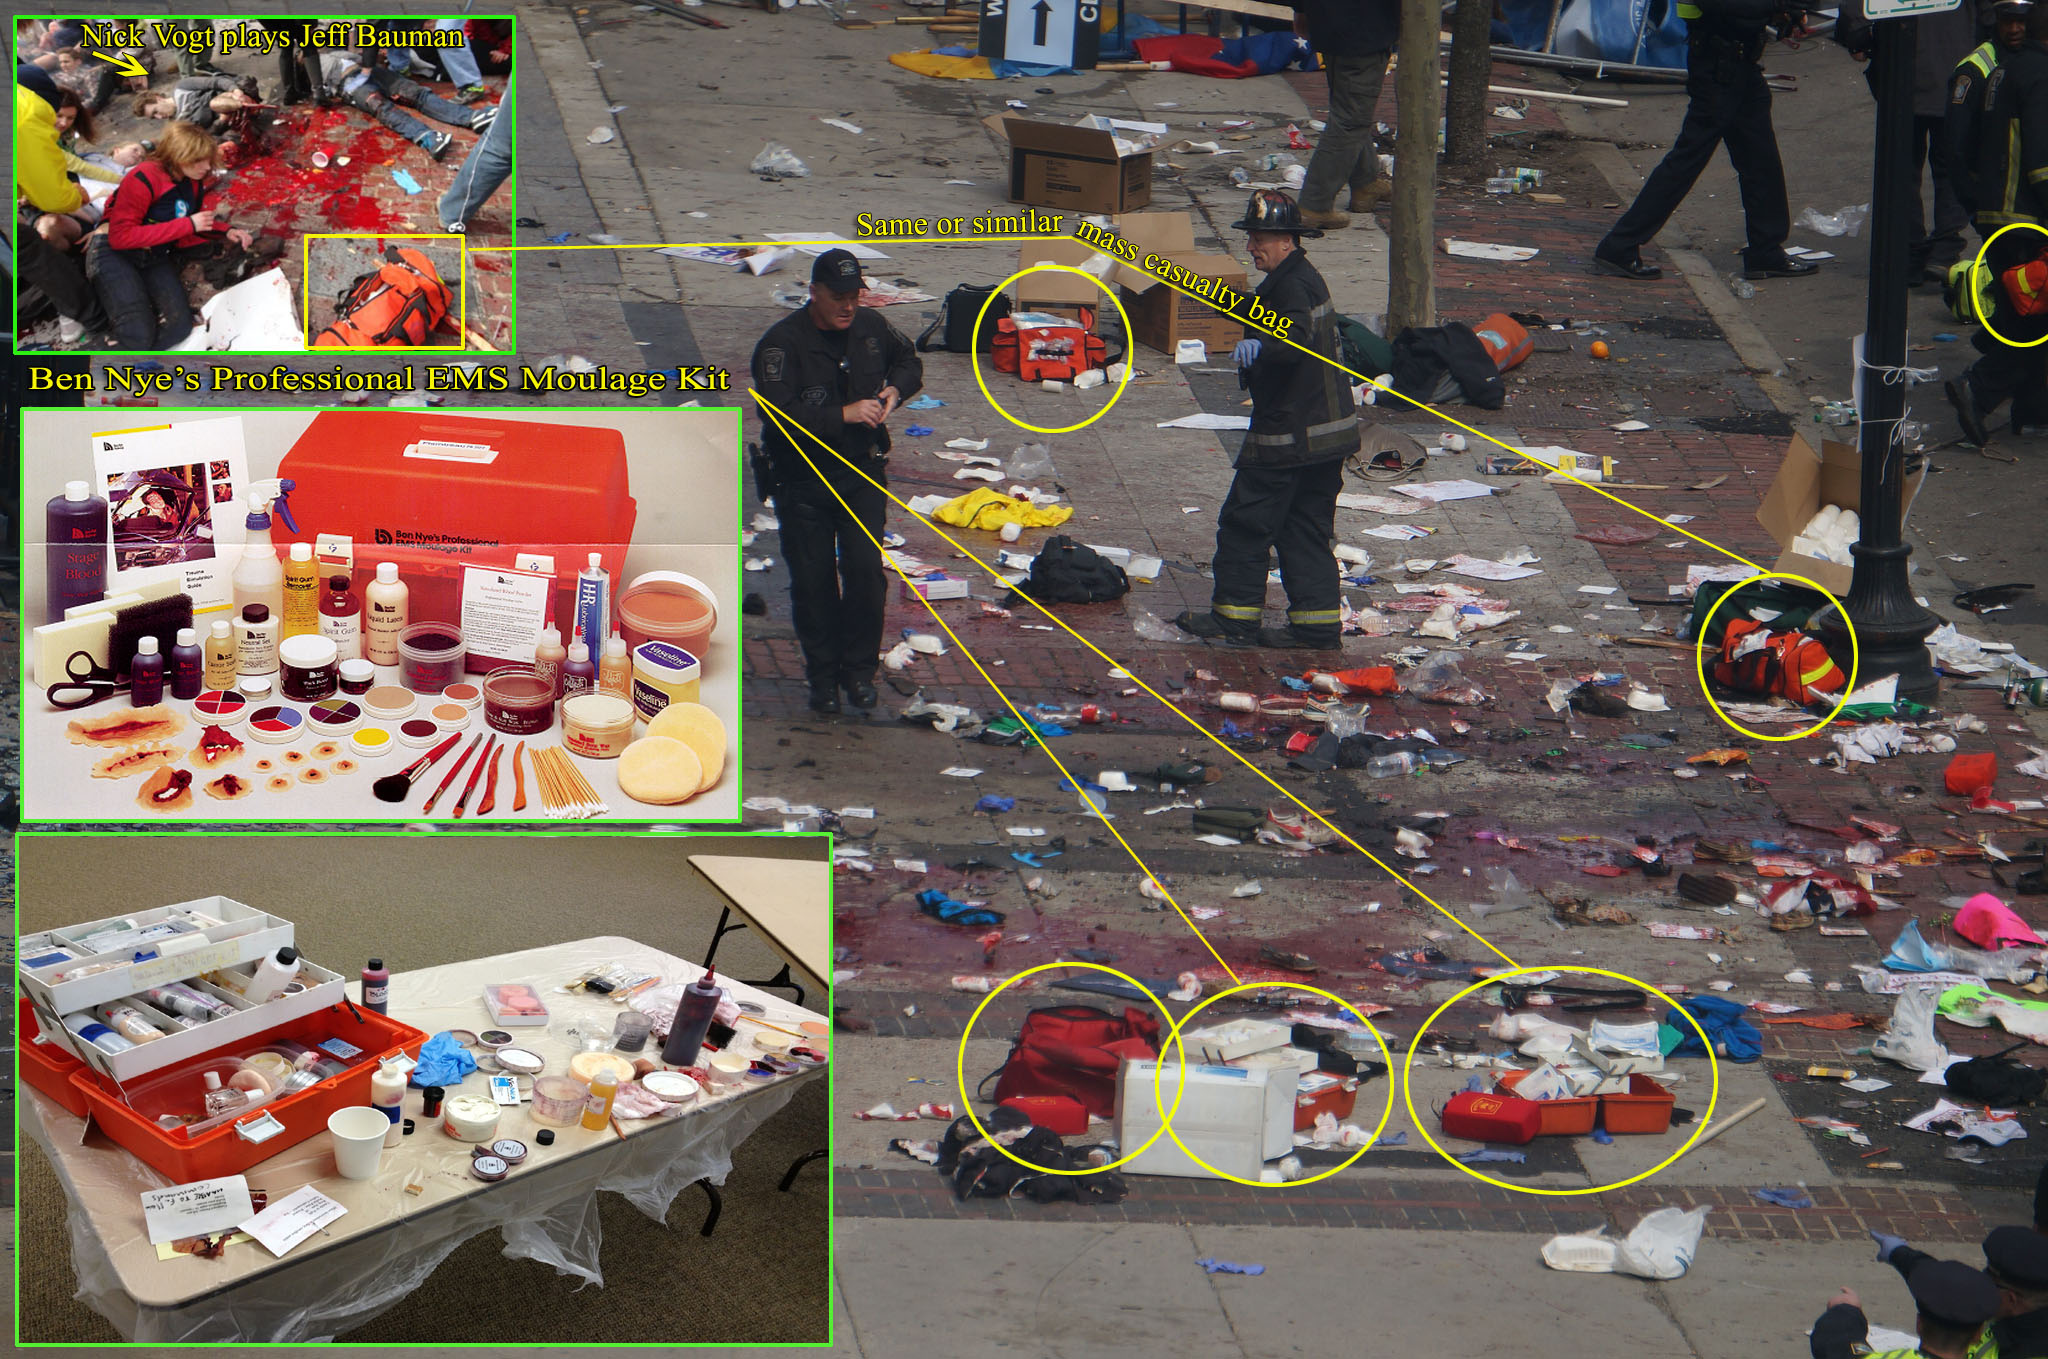 boston-bomb-scene-analysis-of-moulage-kits